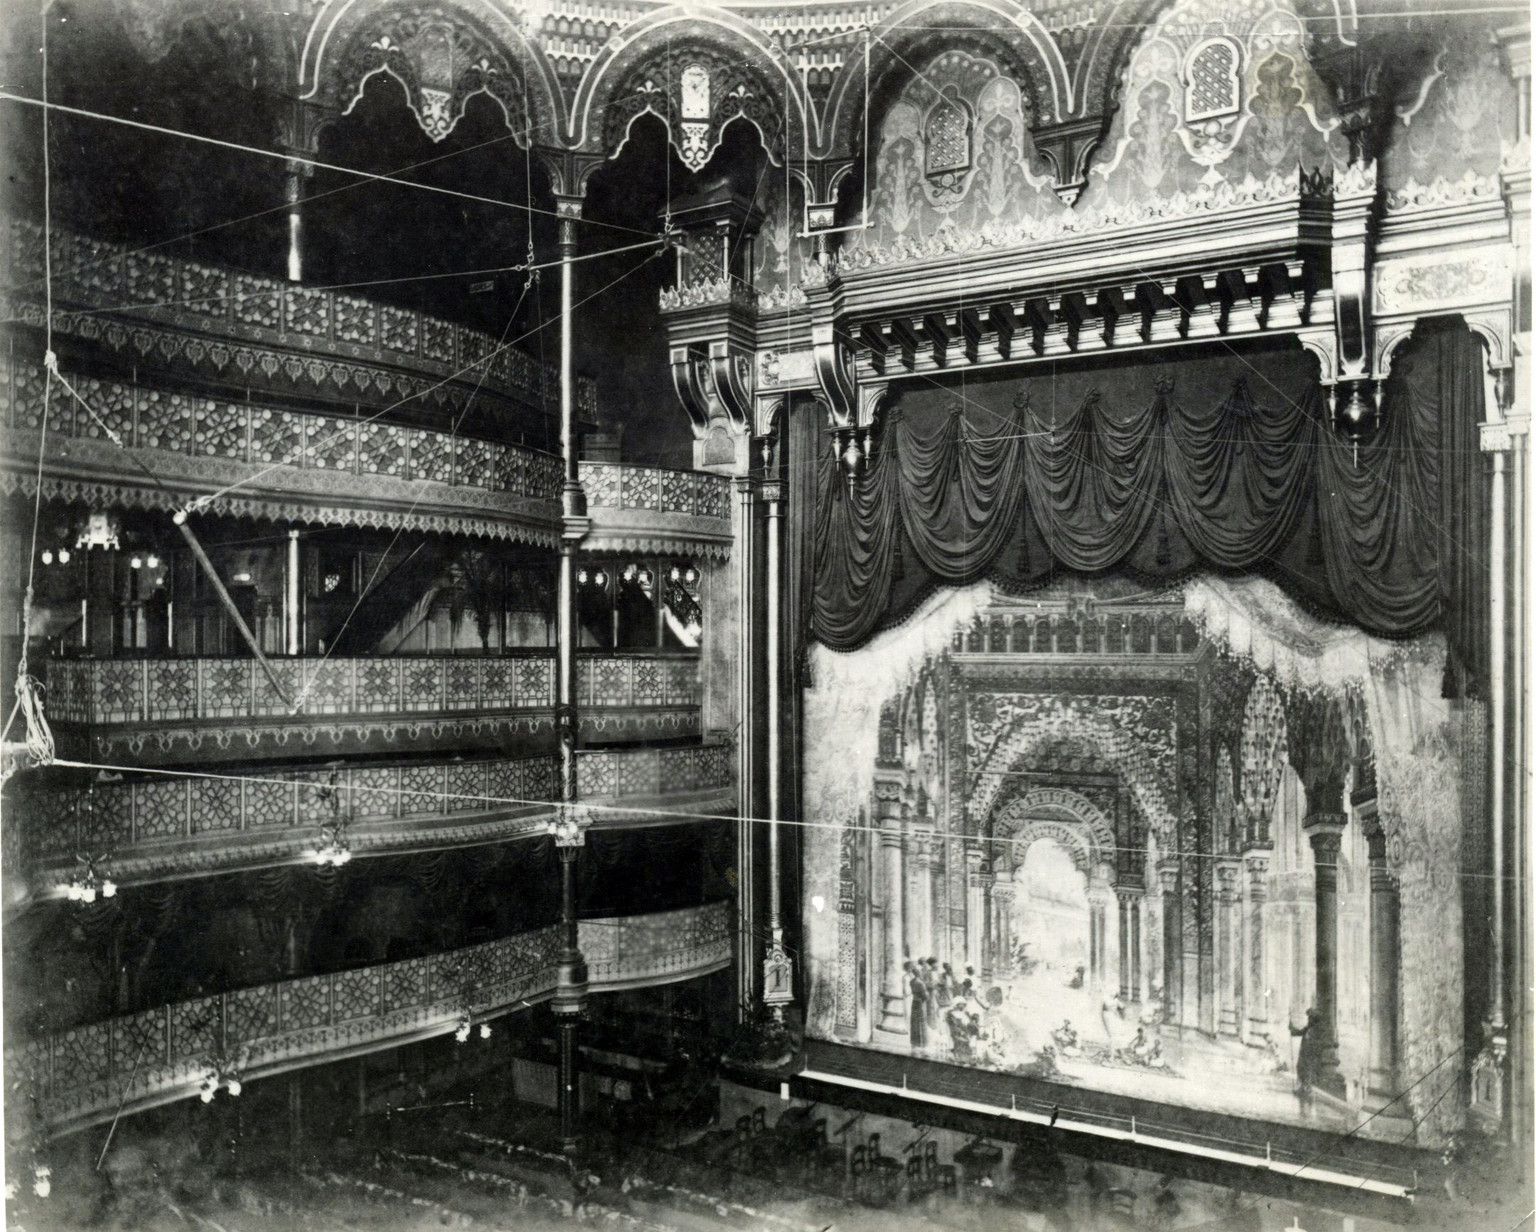 The Interior of the Alhambra Theatre of Varieties, London 1897.